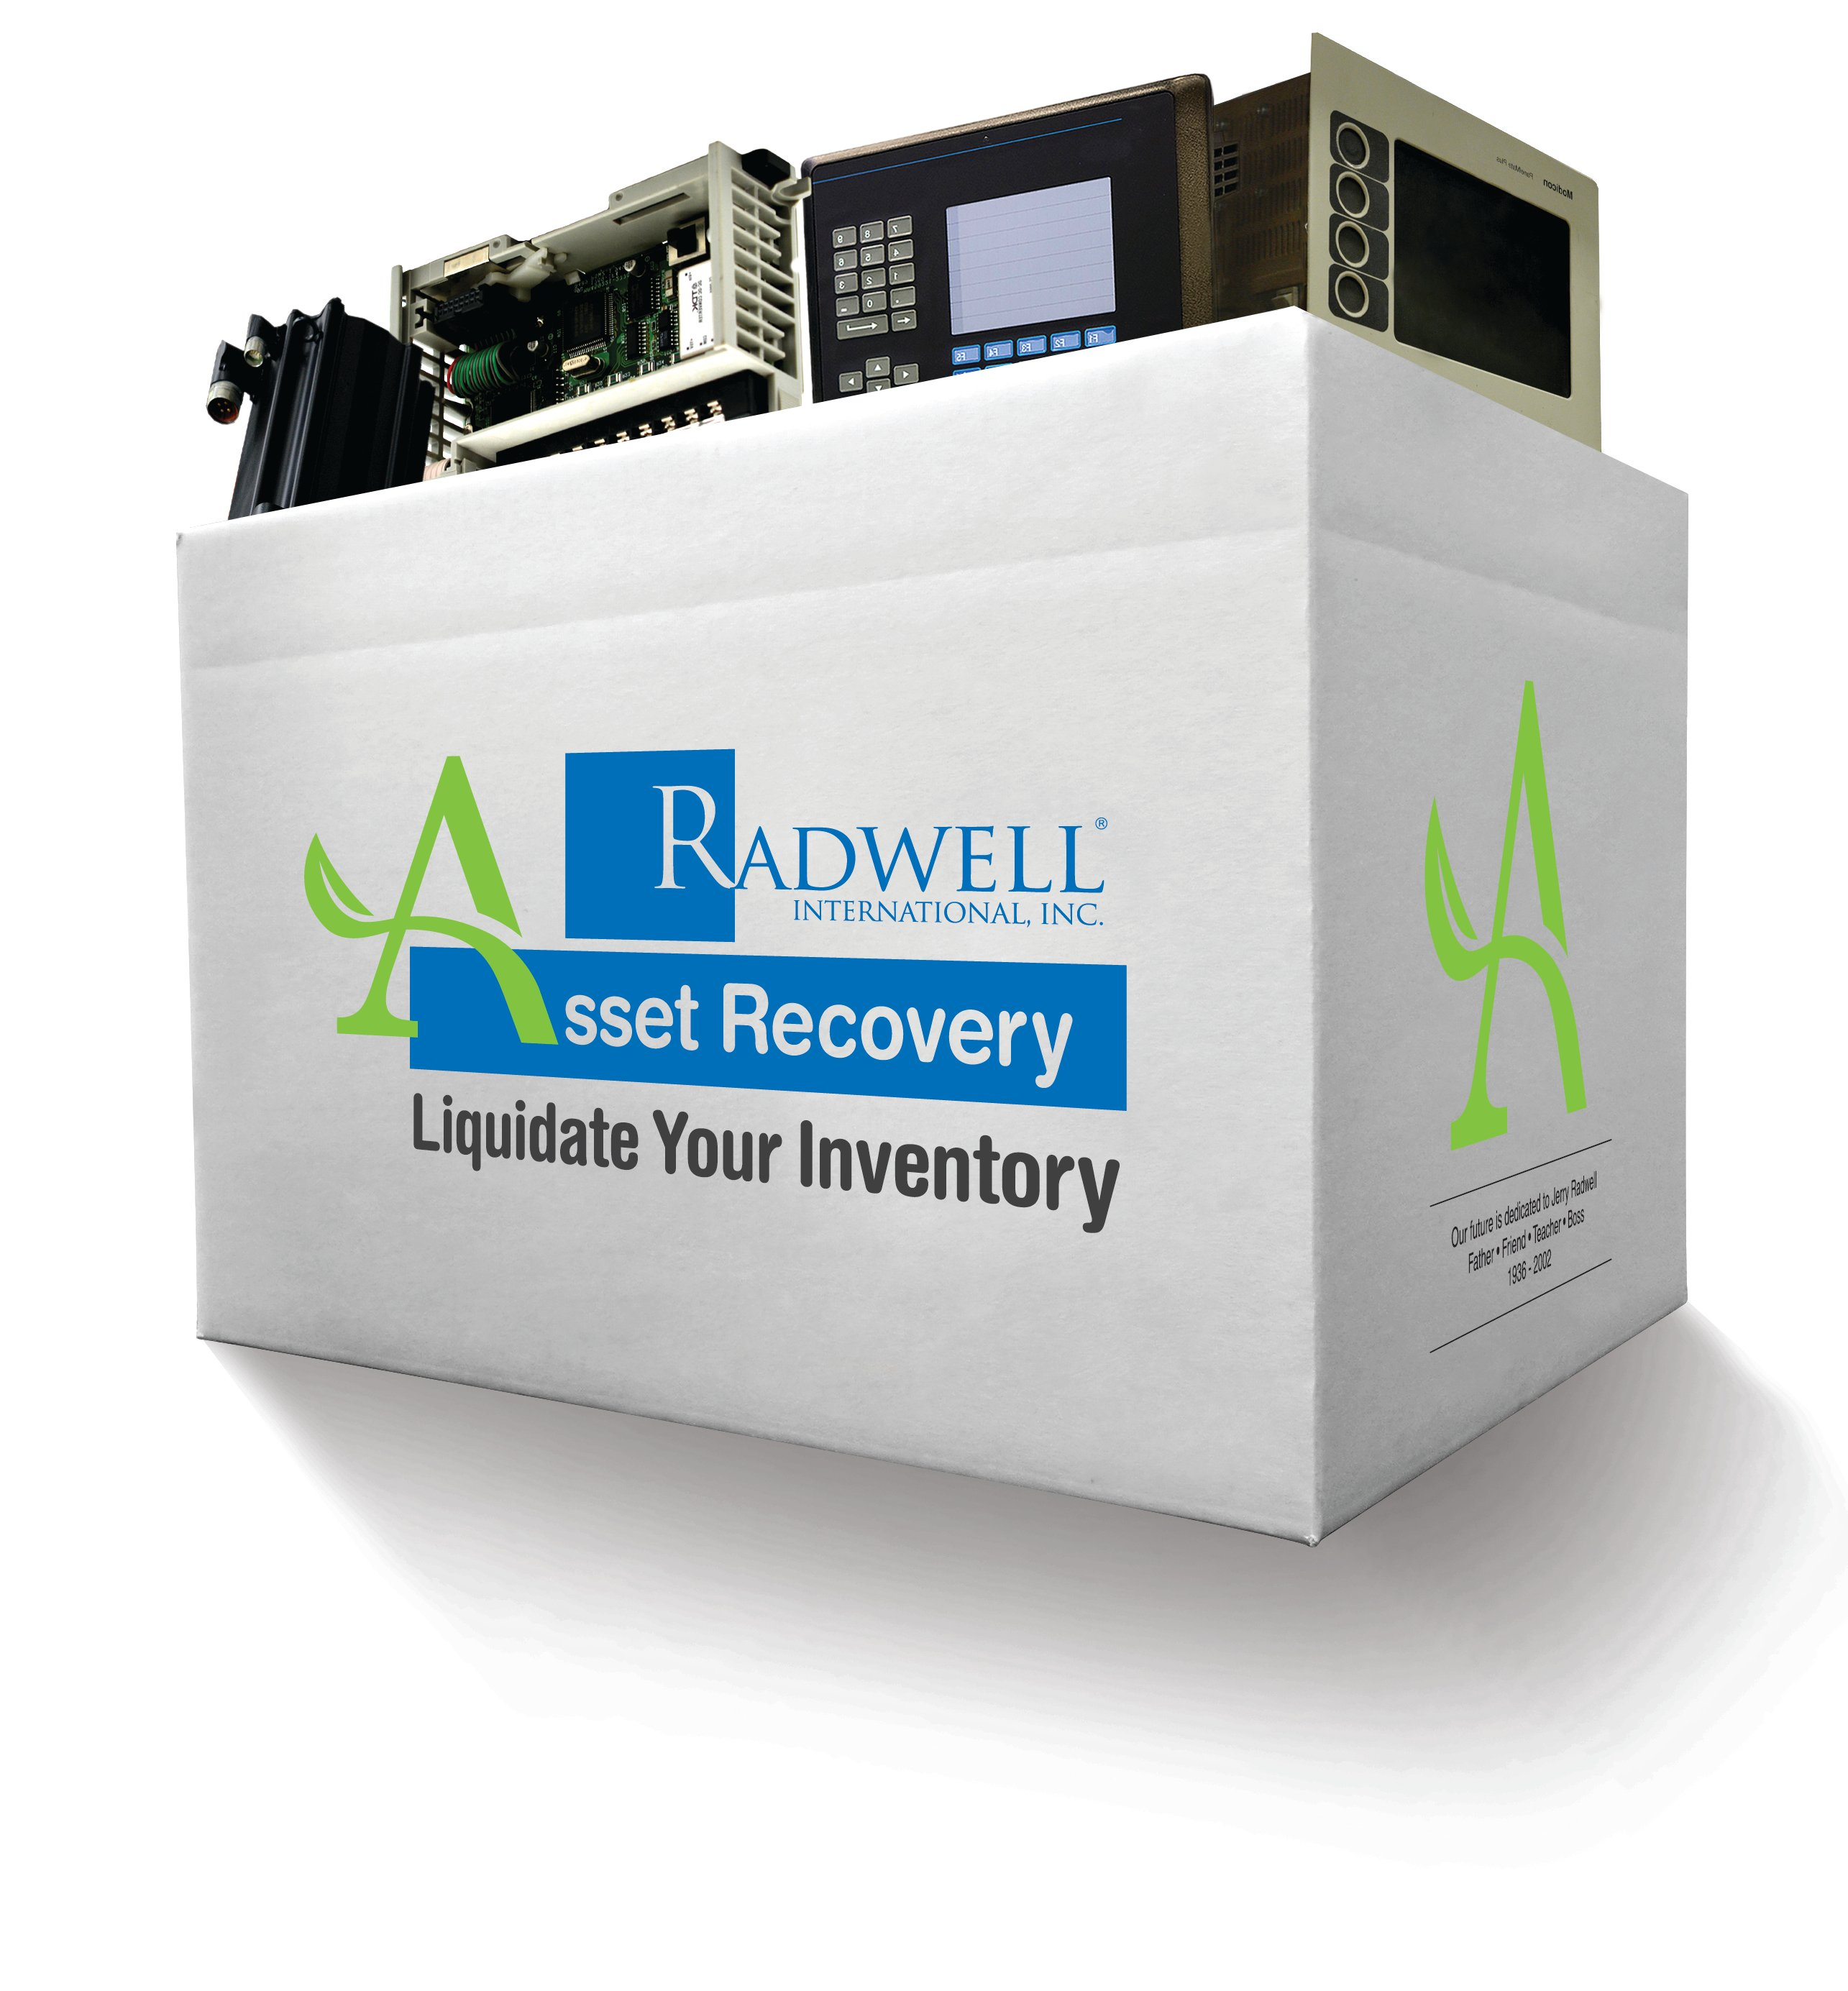 Radwell International AssetRecovery Box with Siemens circuit boards Allen Bradley PLCs ACDC Drives